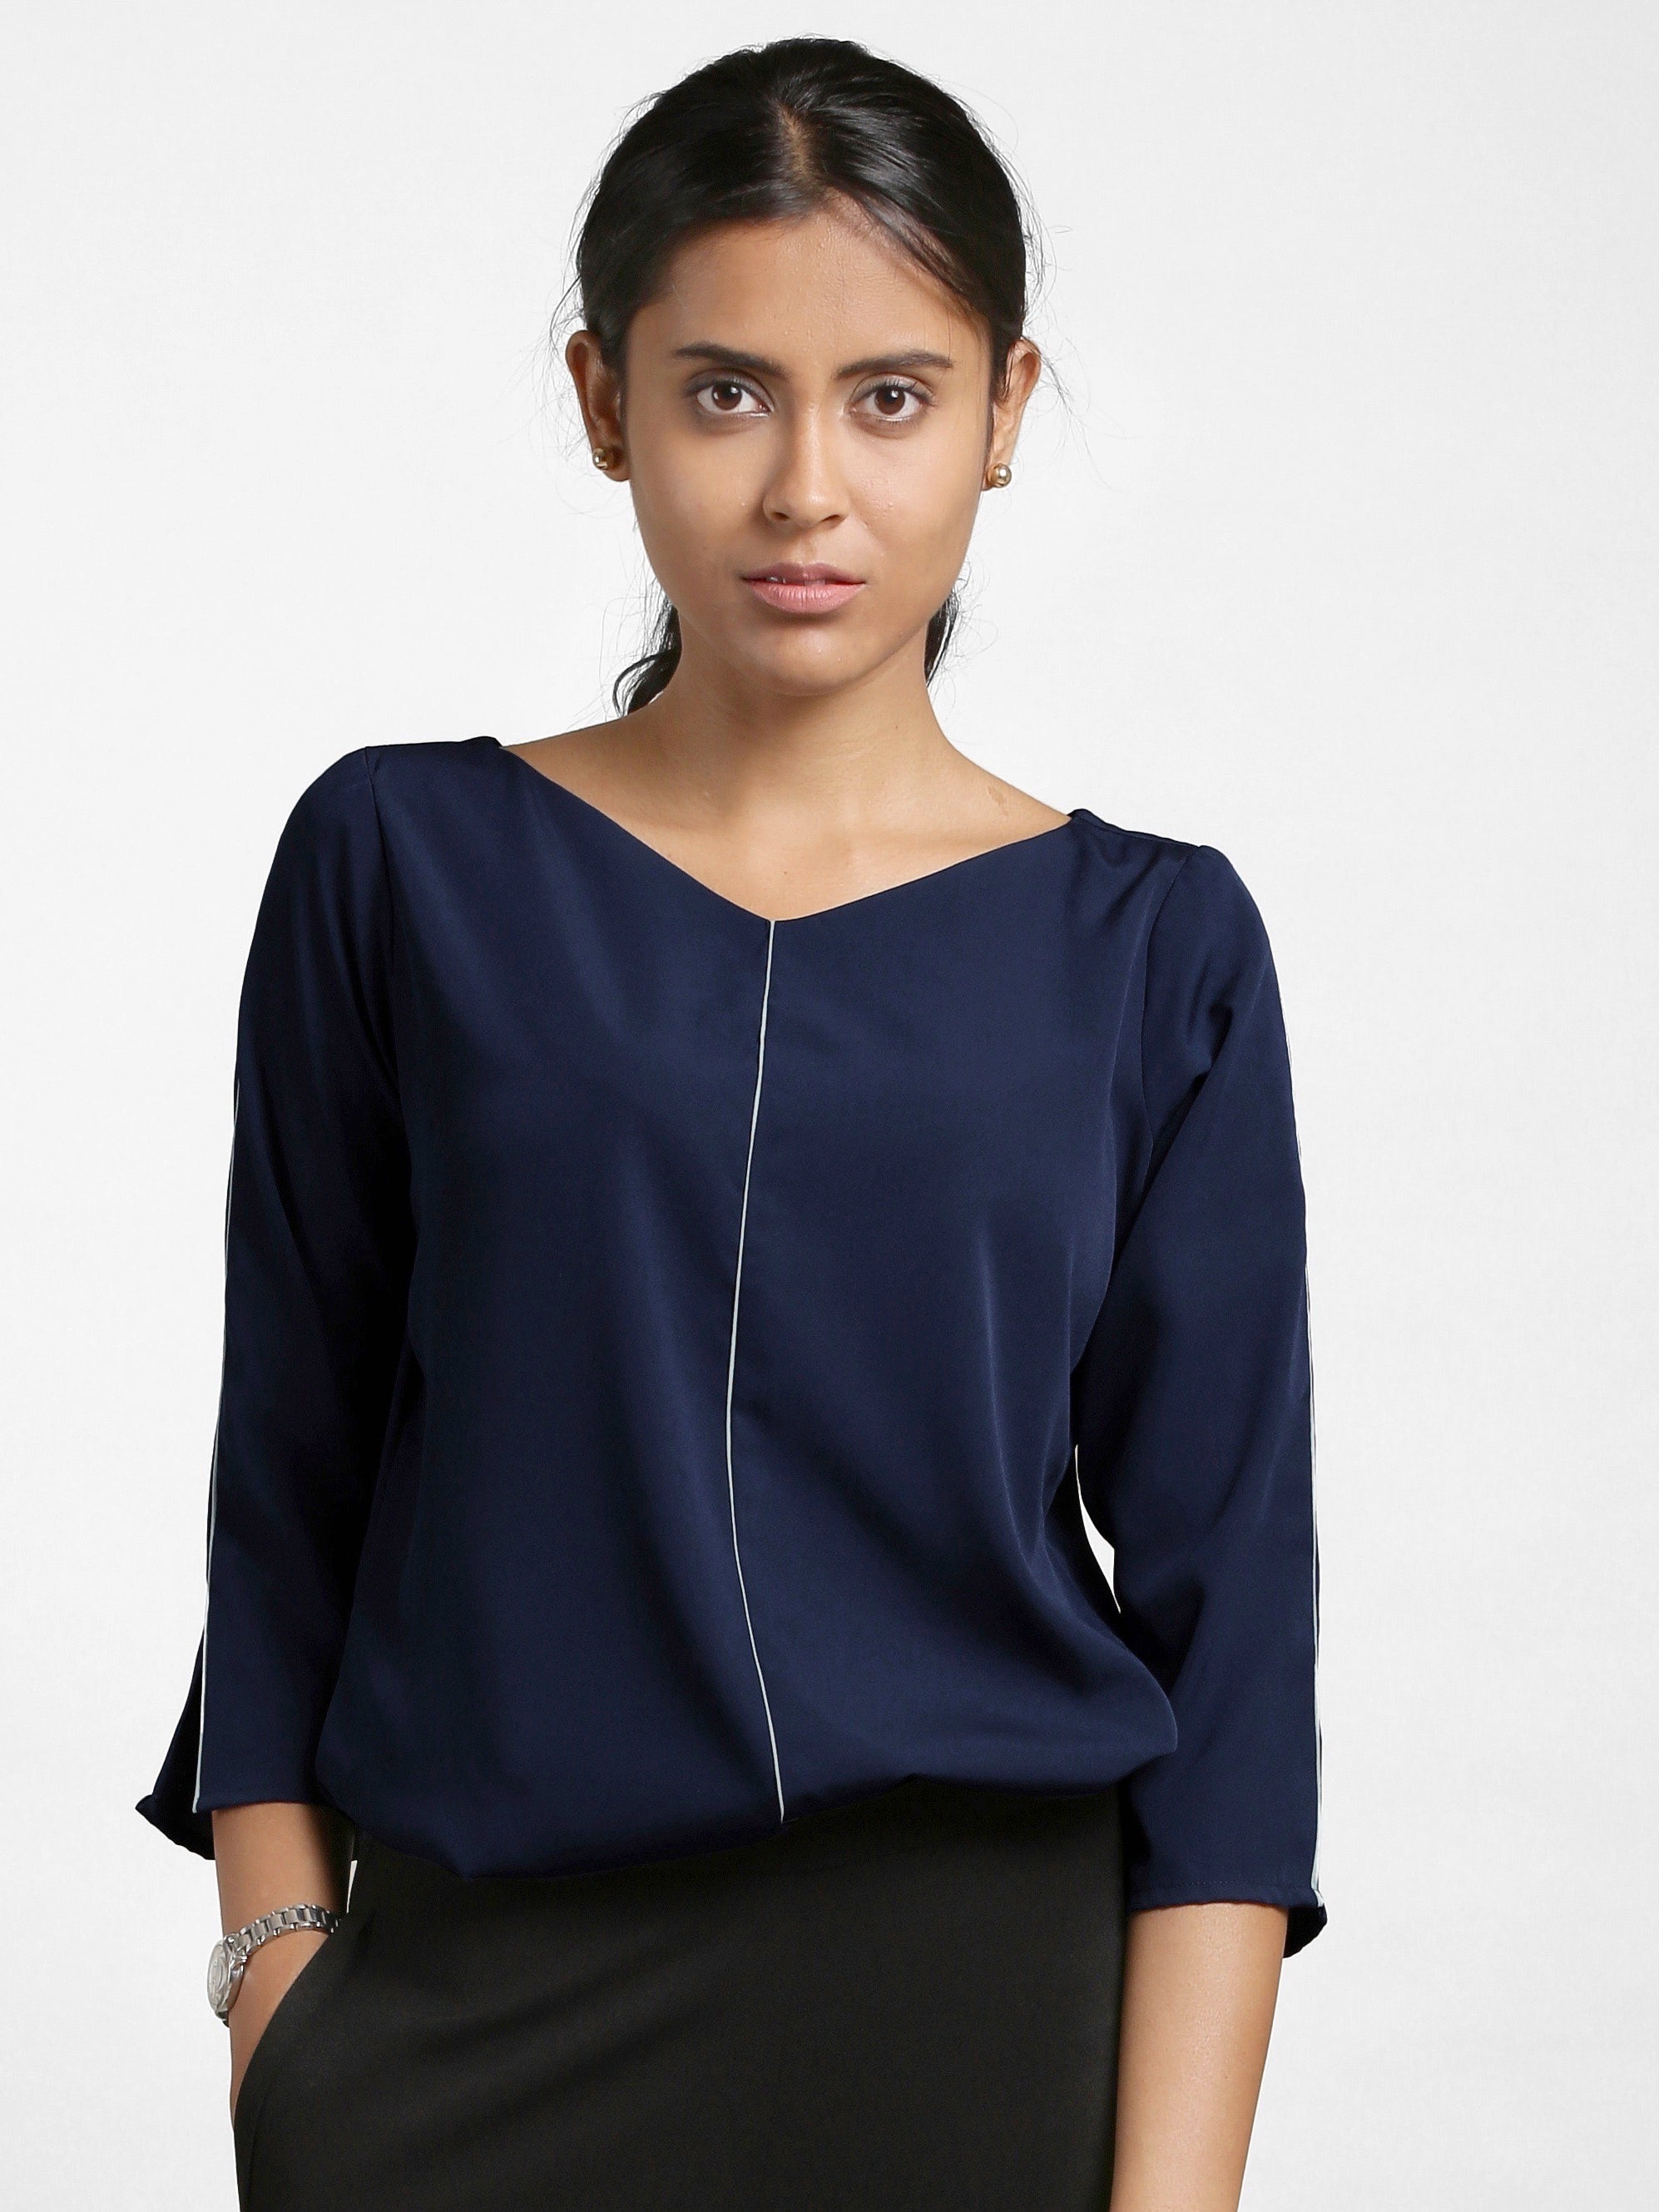 Quarter Sleeves Wide V Neck Top - Navy